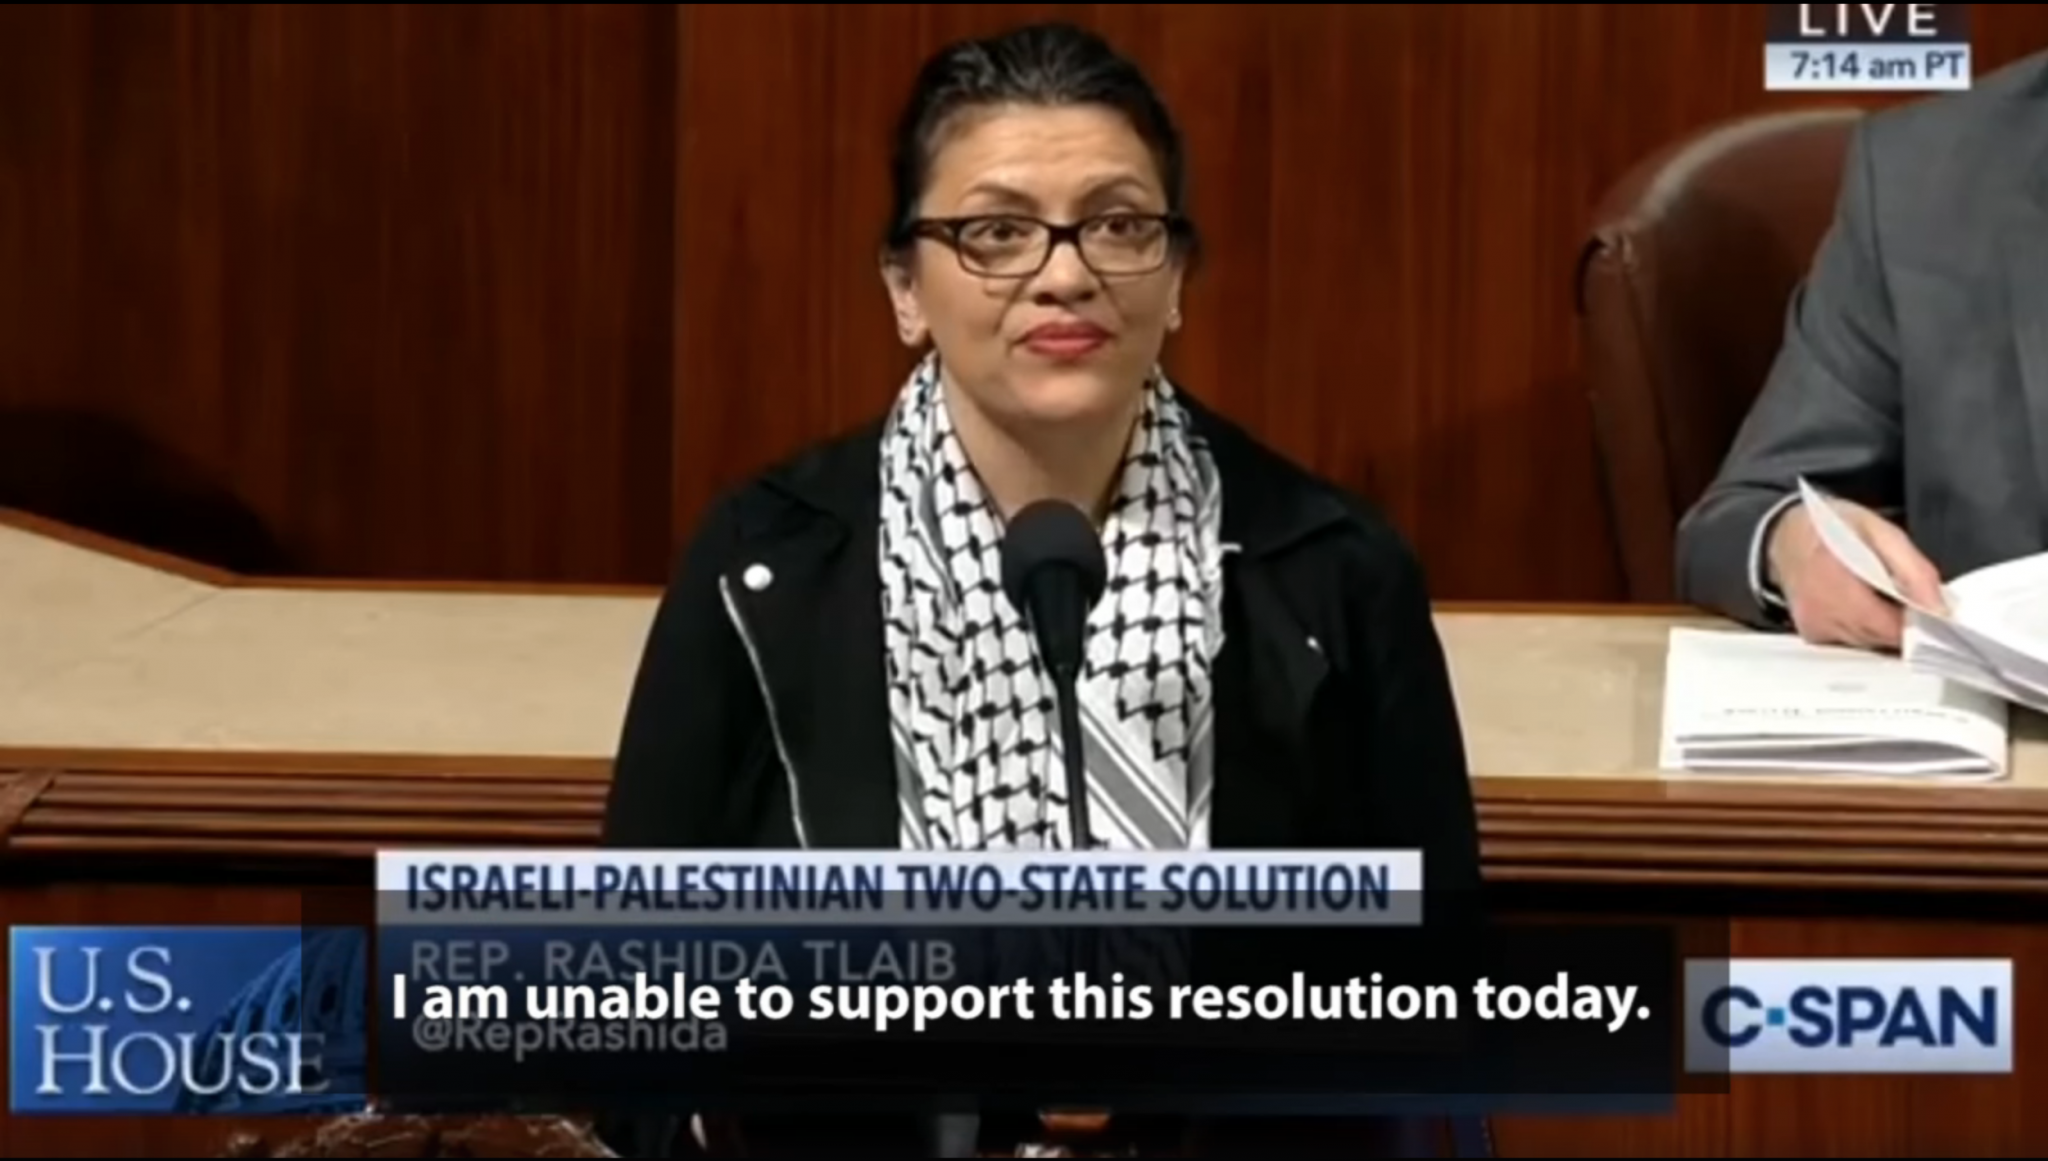 Rep. Rashida Tlaib delivering a speech on the House floor on December 6, 2019. (Snapshot of the C-SPAN video posted on Rep. Tlaib's Facebook account)